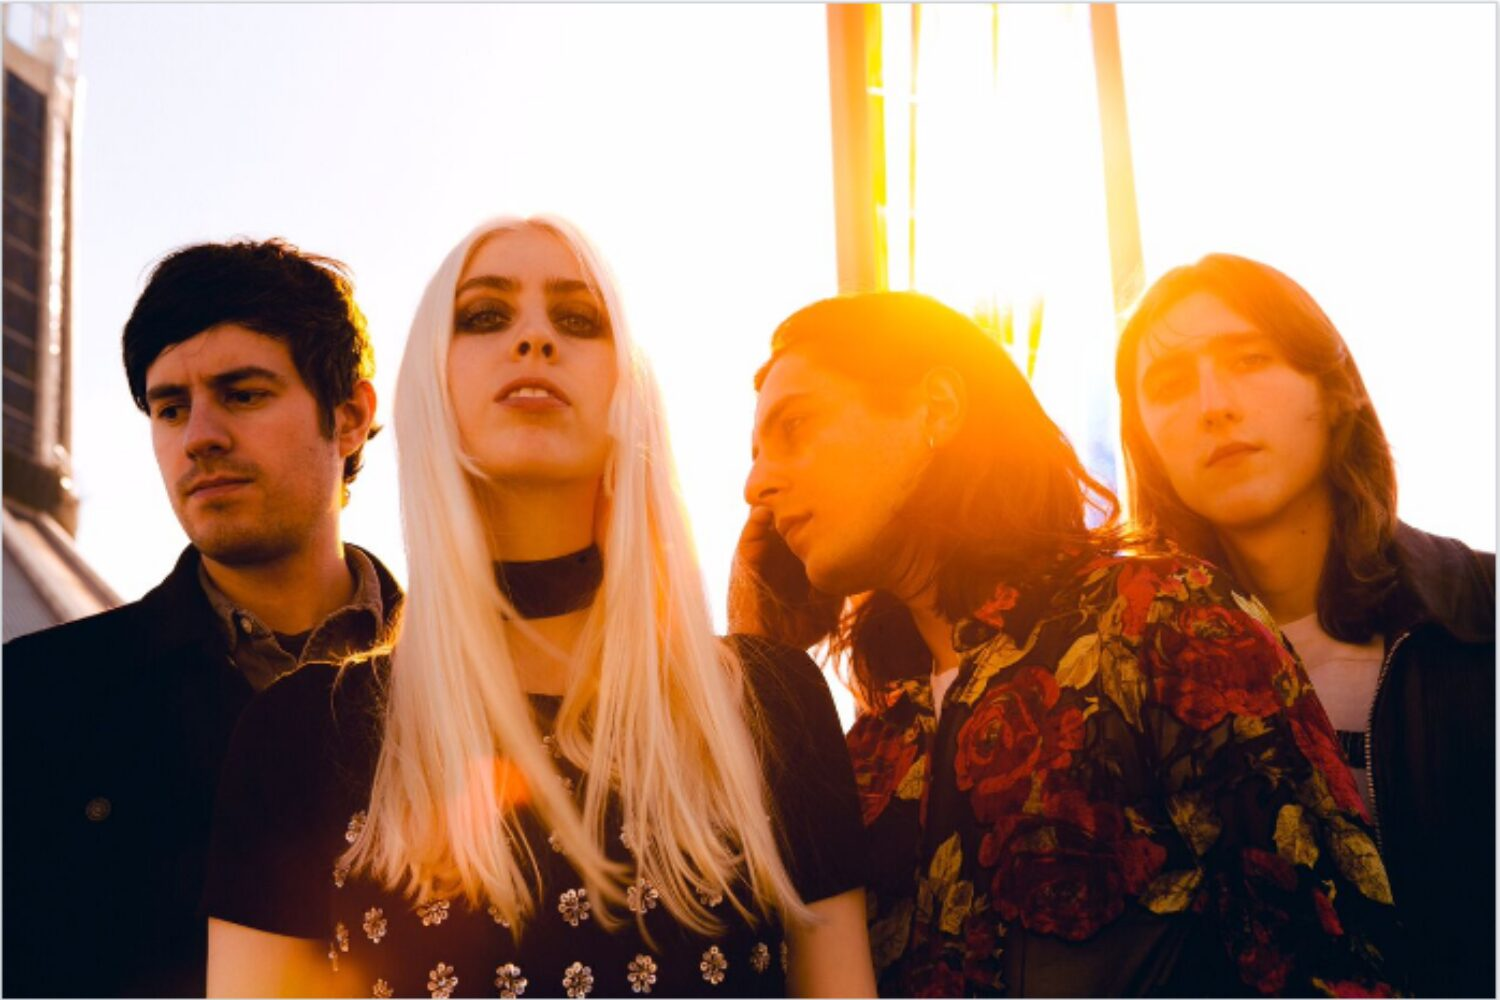 INHEAVEN set the 'World On Fire' with another taster of their debut album